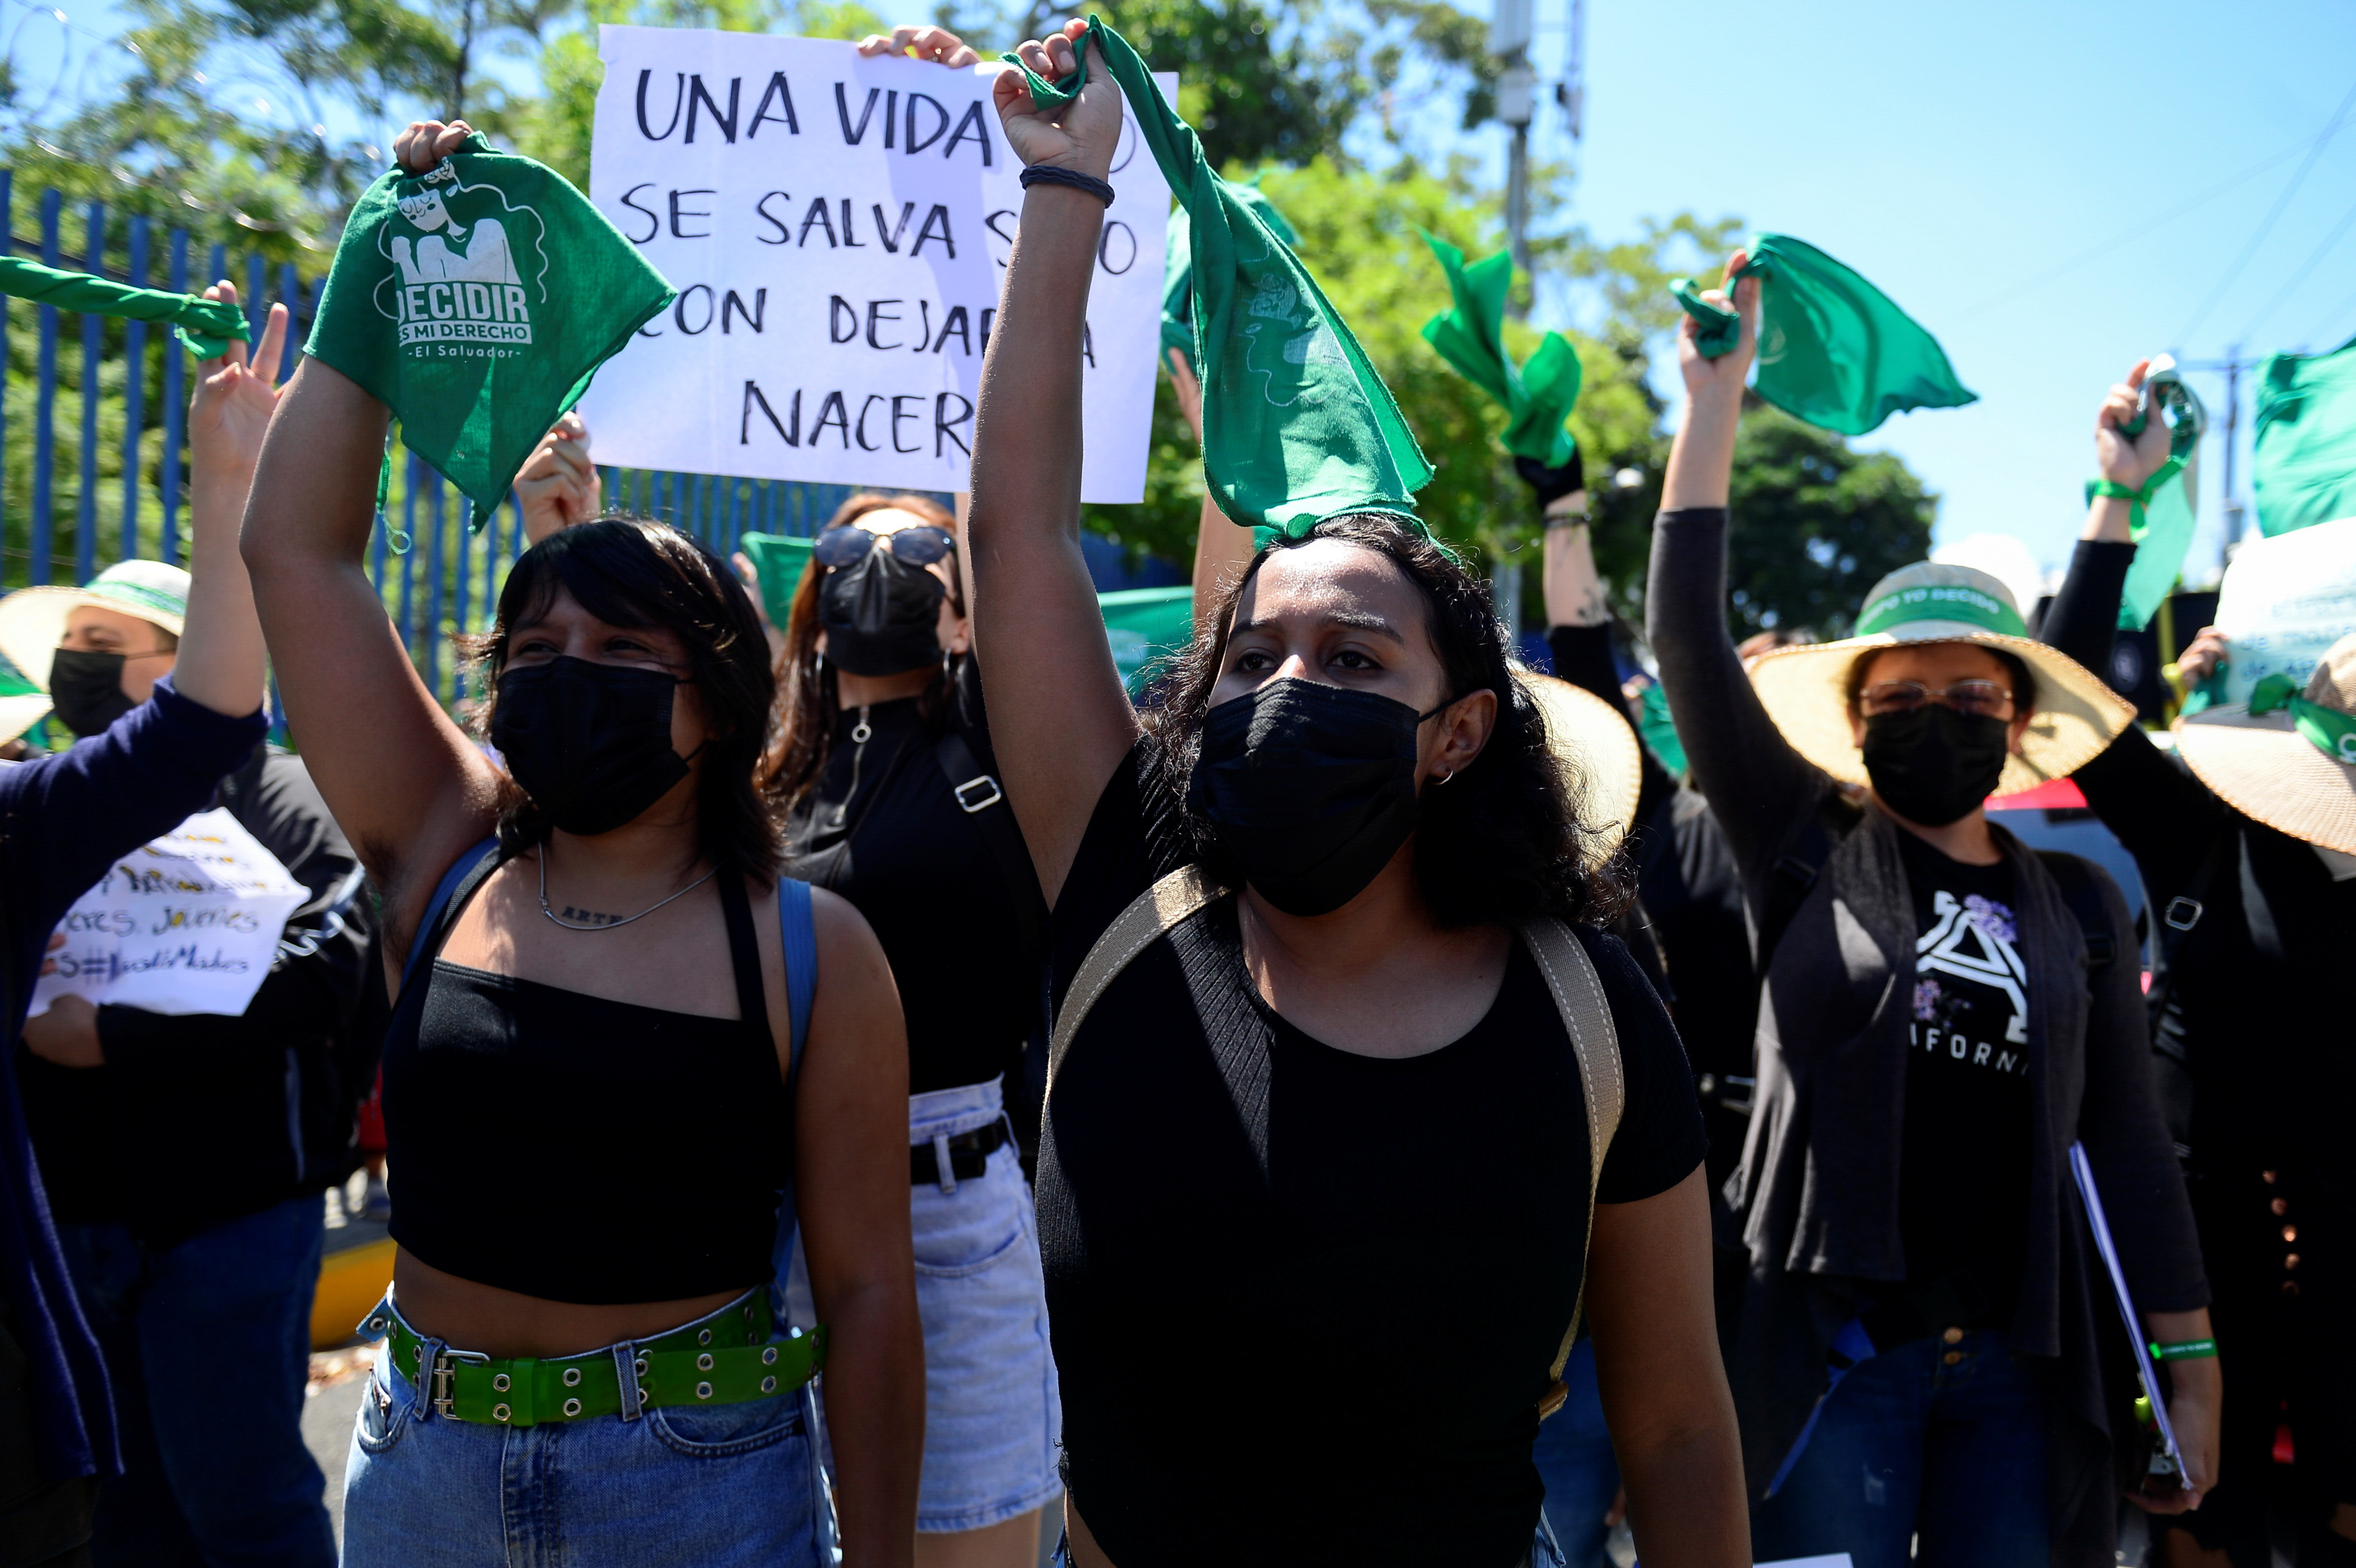 Women hold up green handkerchiefs, symbolizing the abortion rights movement, during a protest to mark International Safe Abortion Day in San Salvador, El Salvador, September 28, 2021. REUTERS/Jessica Orellana